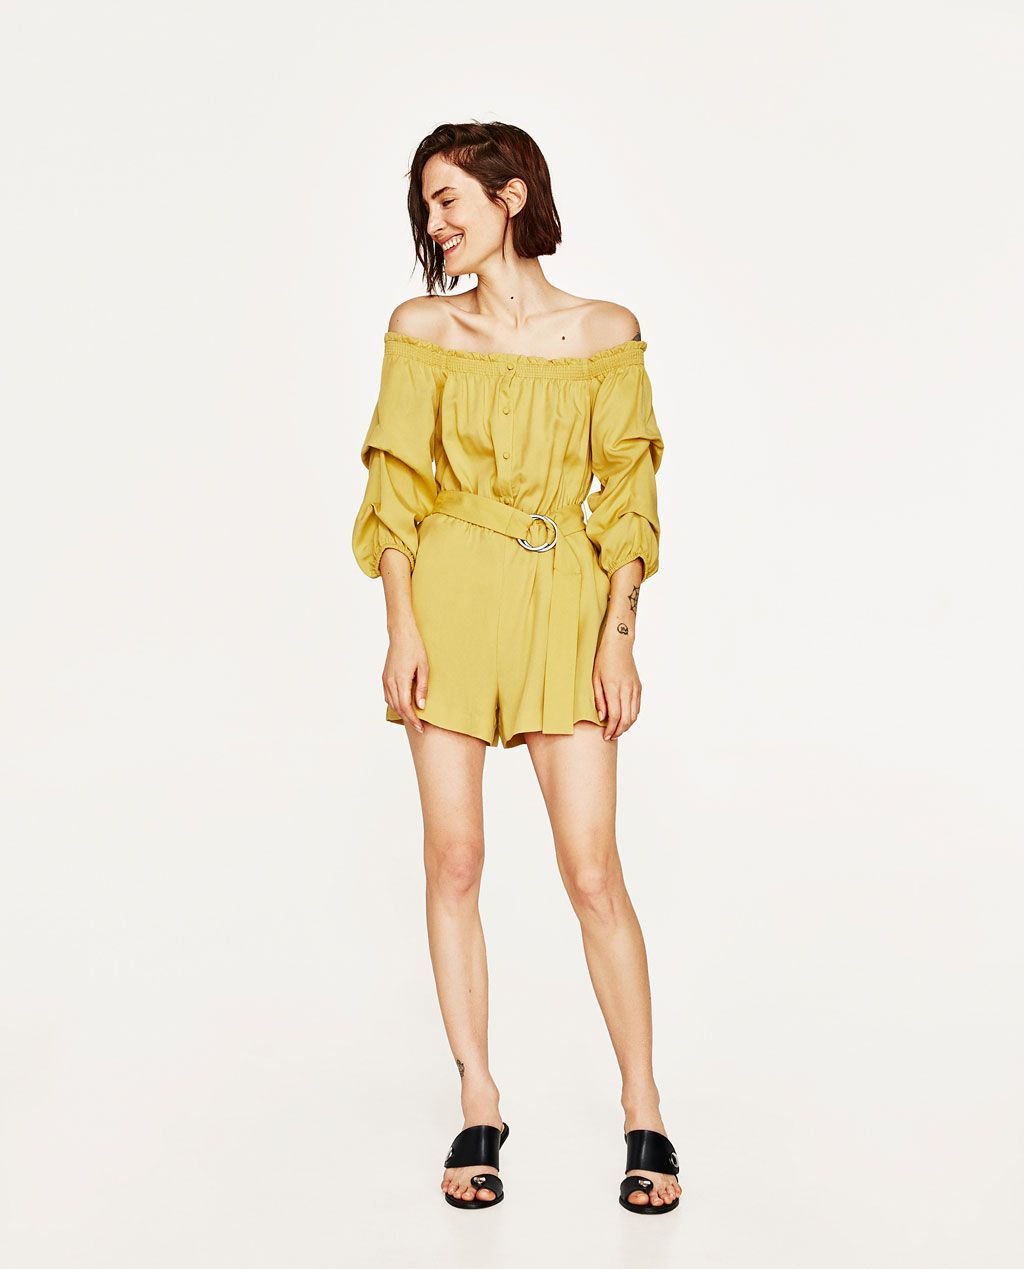 3c53ee9fee1 OFF-THE-SHOULDER BLOUSE-Blouses-TOPS-WOMAN-SALE | ZARA United States ...